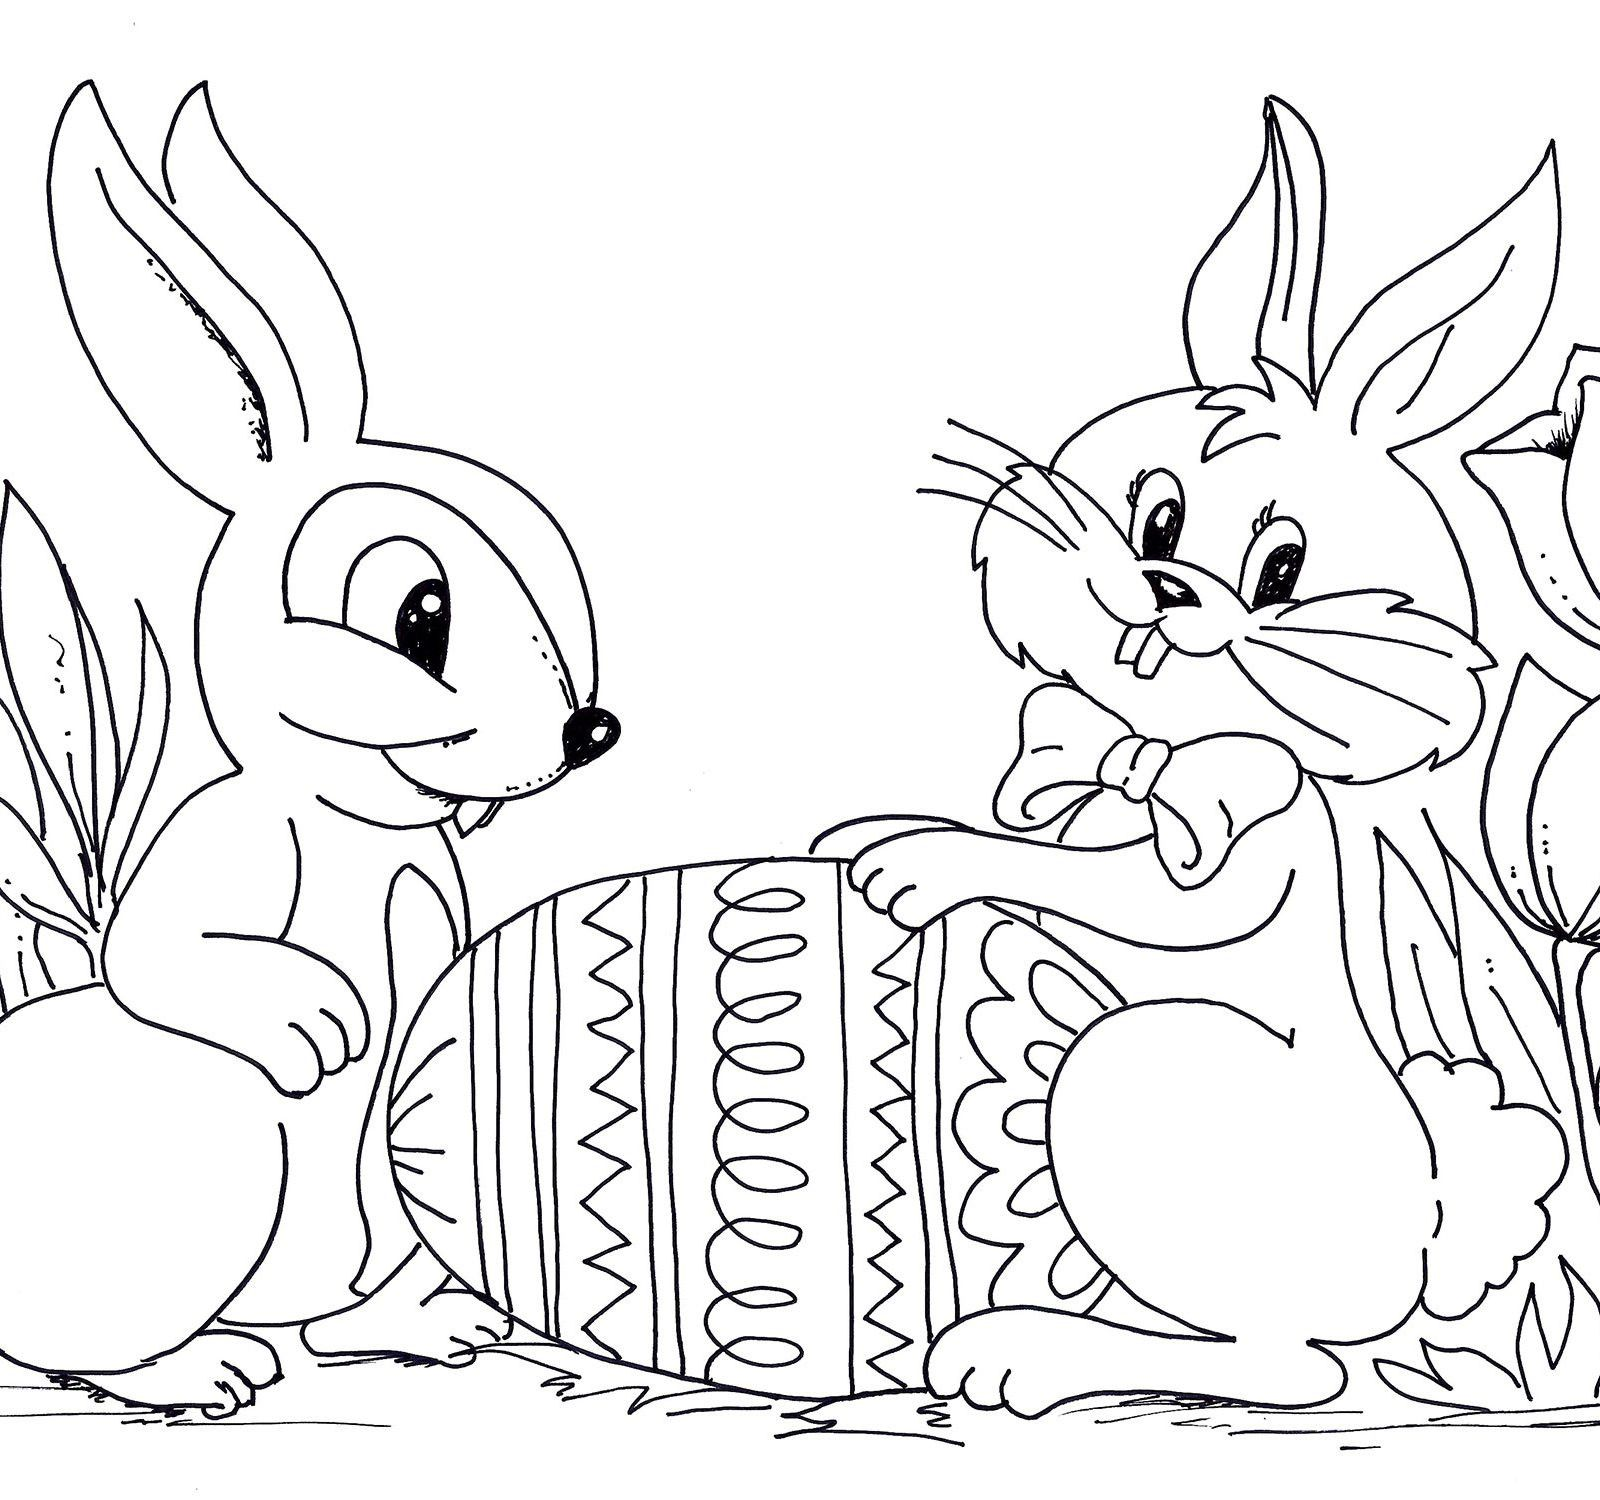 Butterfly Coloring Pages Crayola Coloring Pages Coloring Pages Crayola Printable Page For Kids Butterfly With Easter Color By Number Inspirational